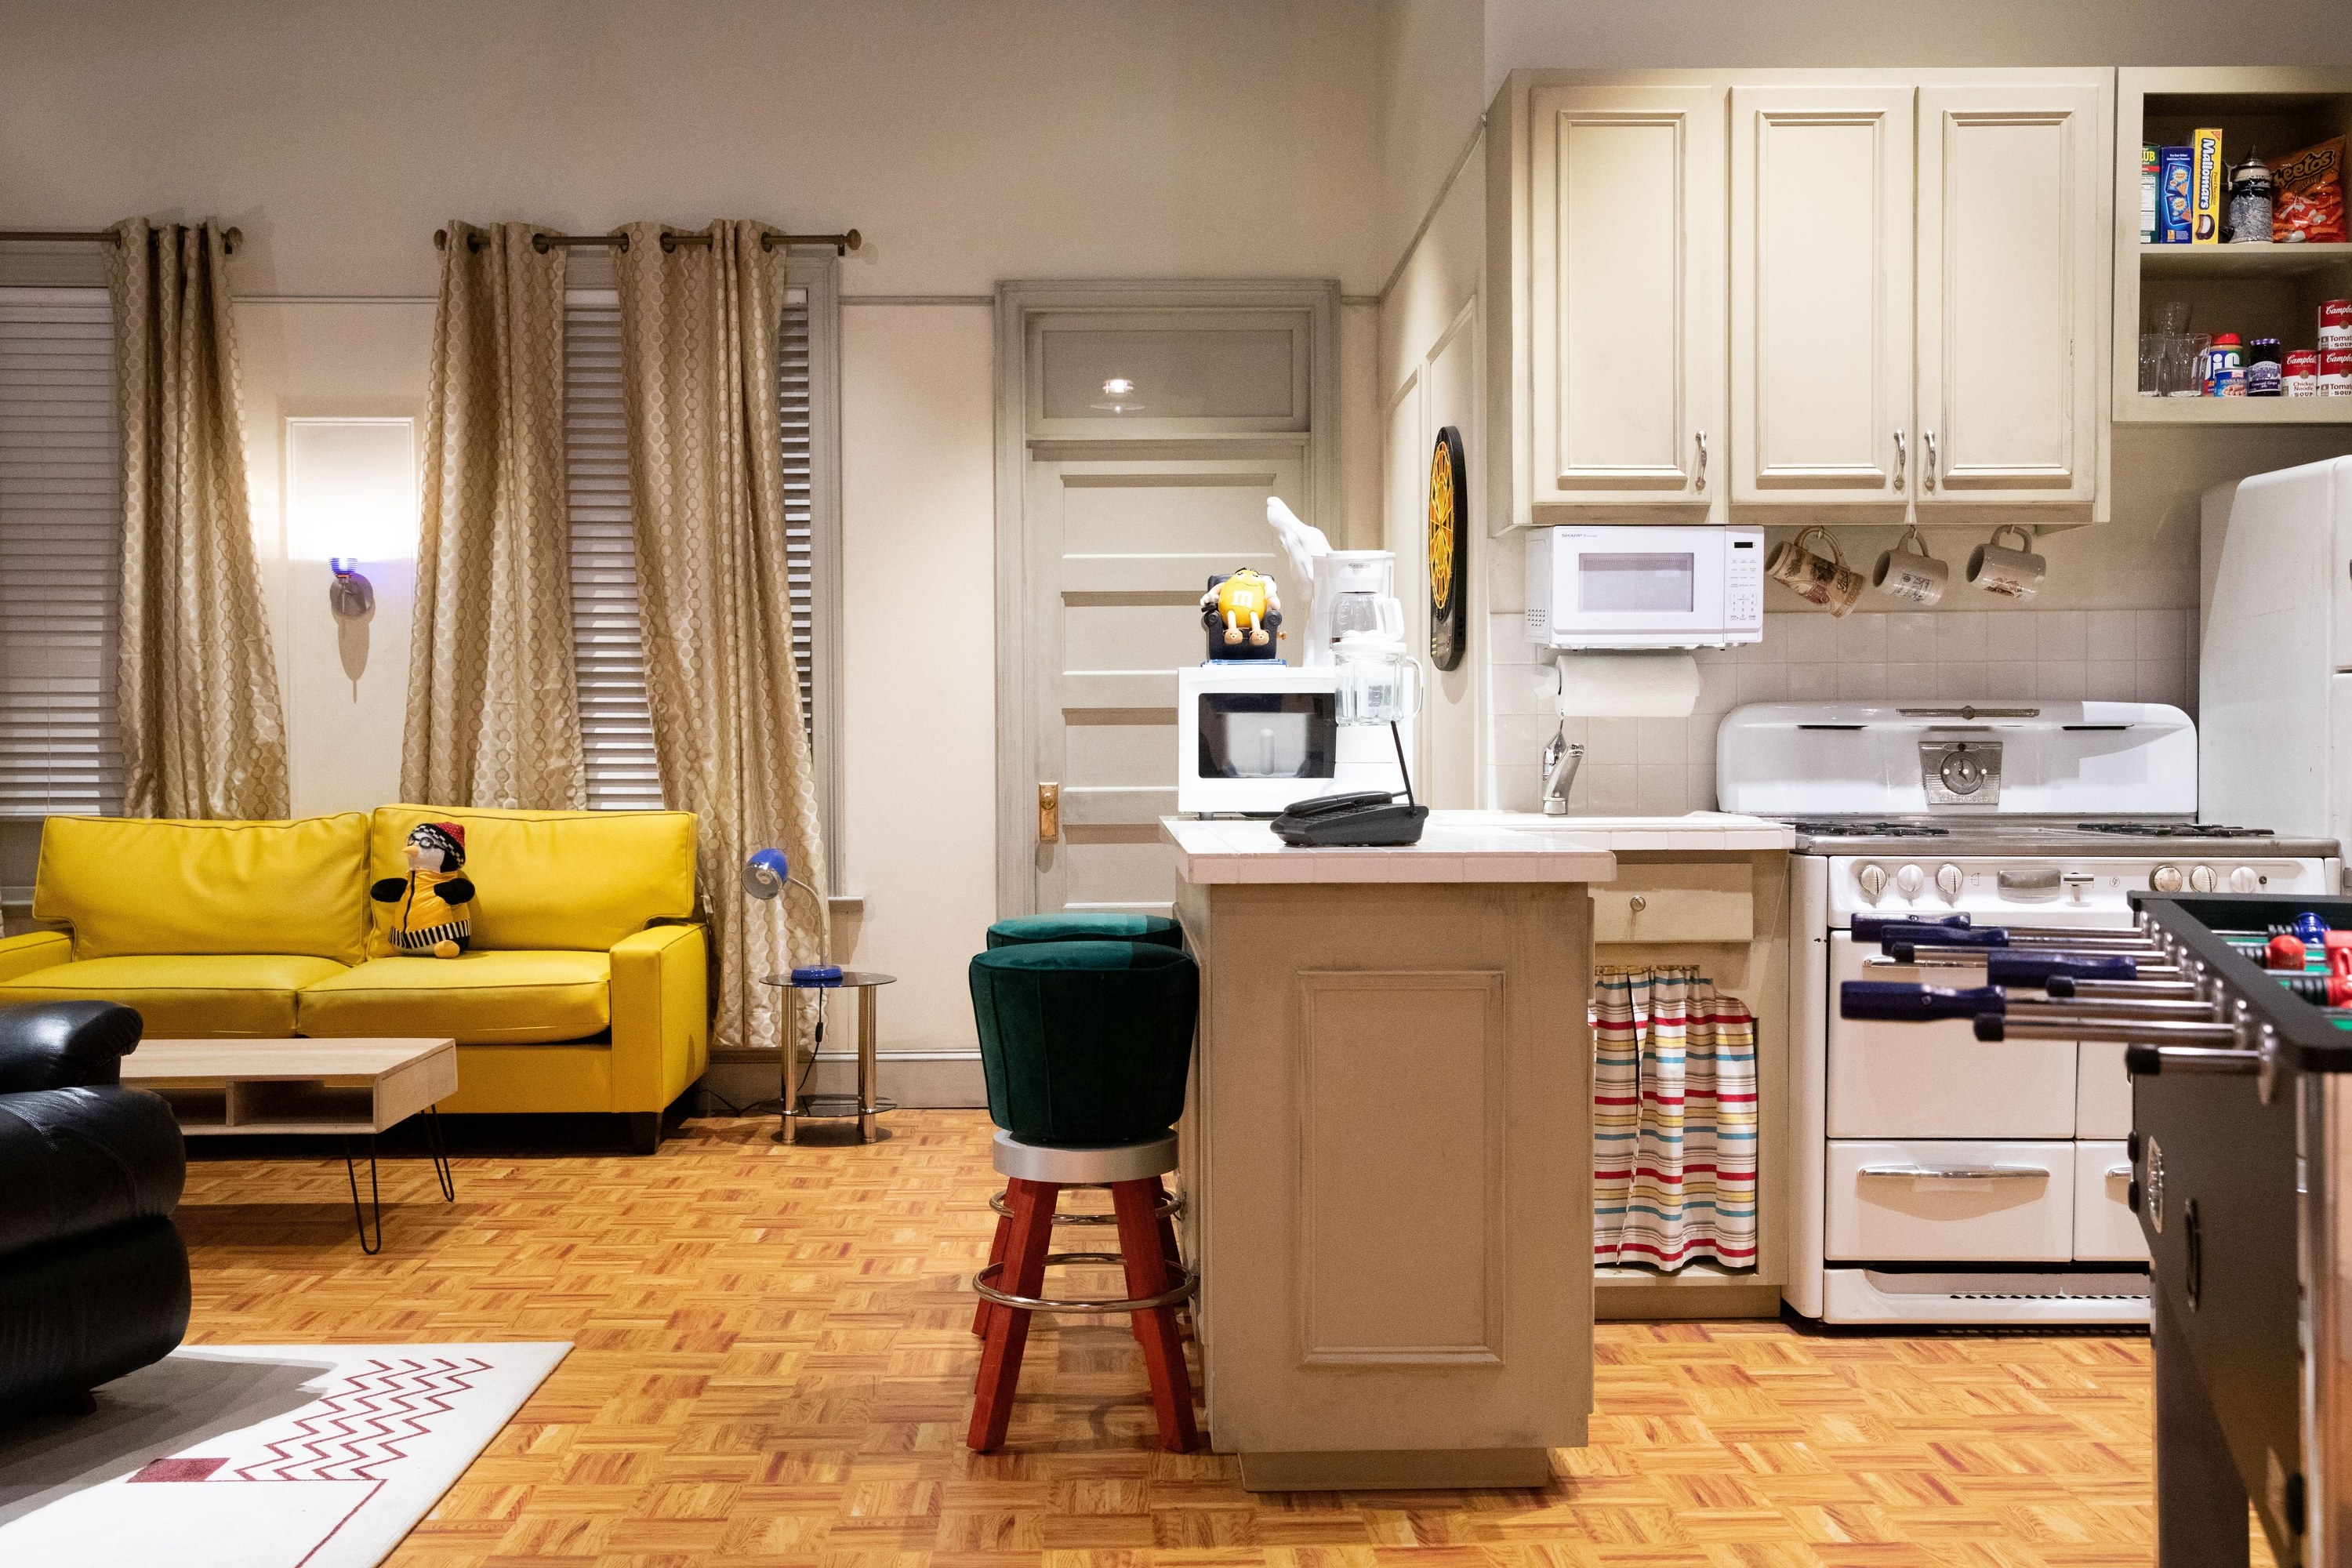 the kitchen set from the Friends TV show